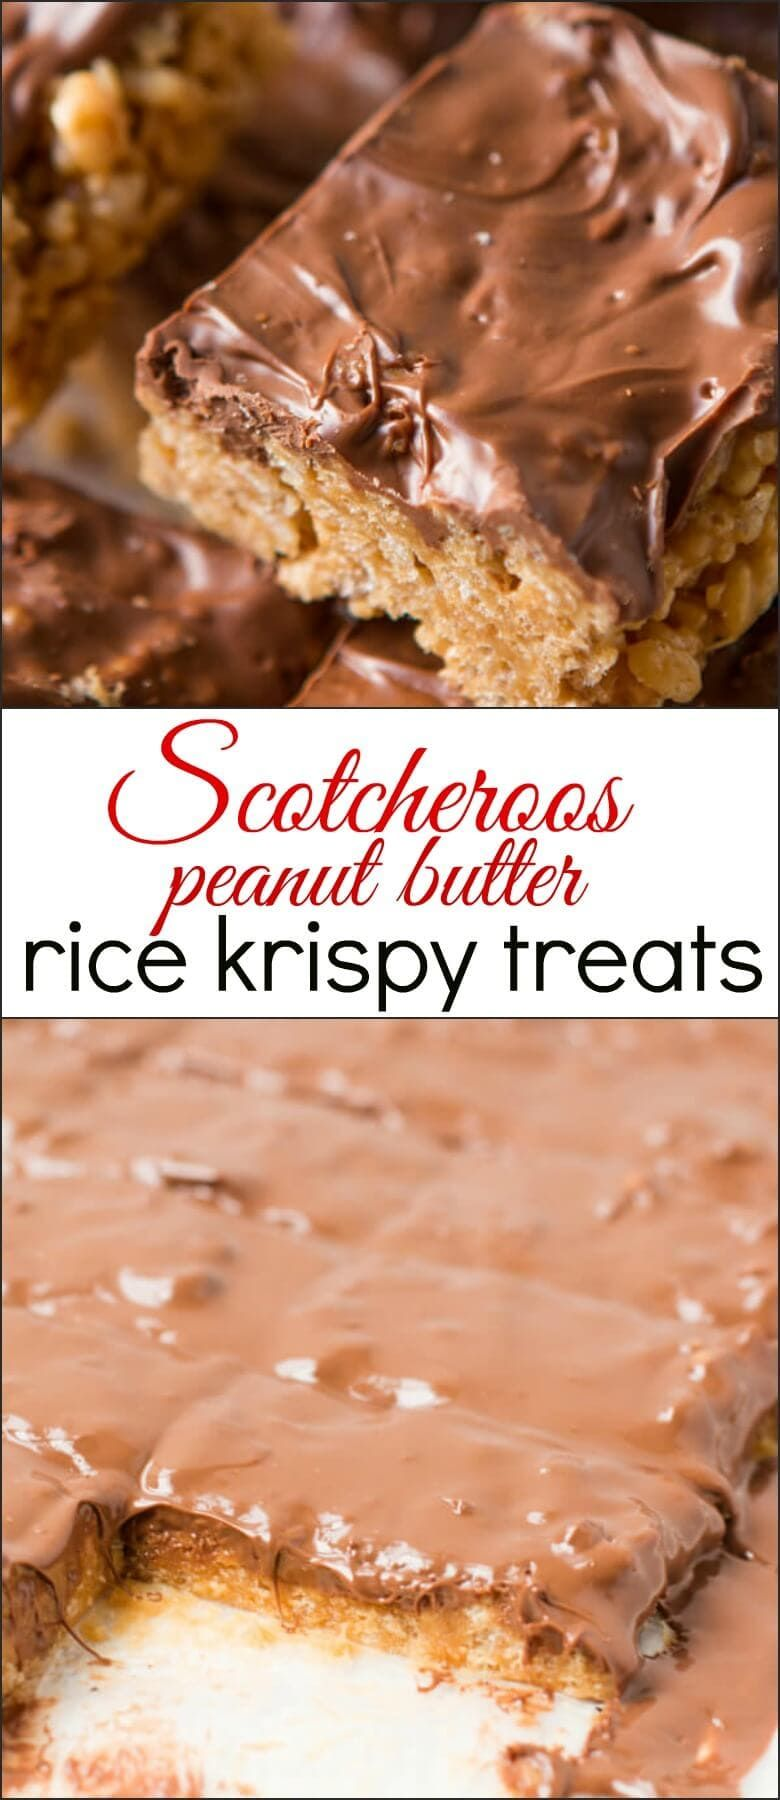 This scotcheroos rice krispy treats recipe is seriously such an addicting treat and it only takes a couple of ingredients to make it! peanut butter, rice krispies, butterscotch chips, chocolate chips #ricekrispiestreats